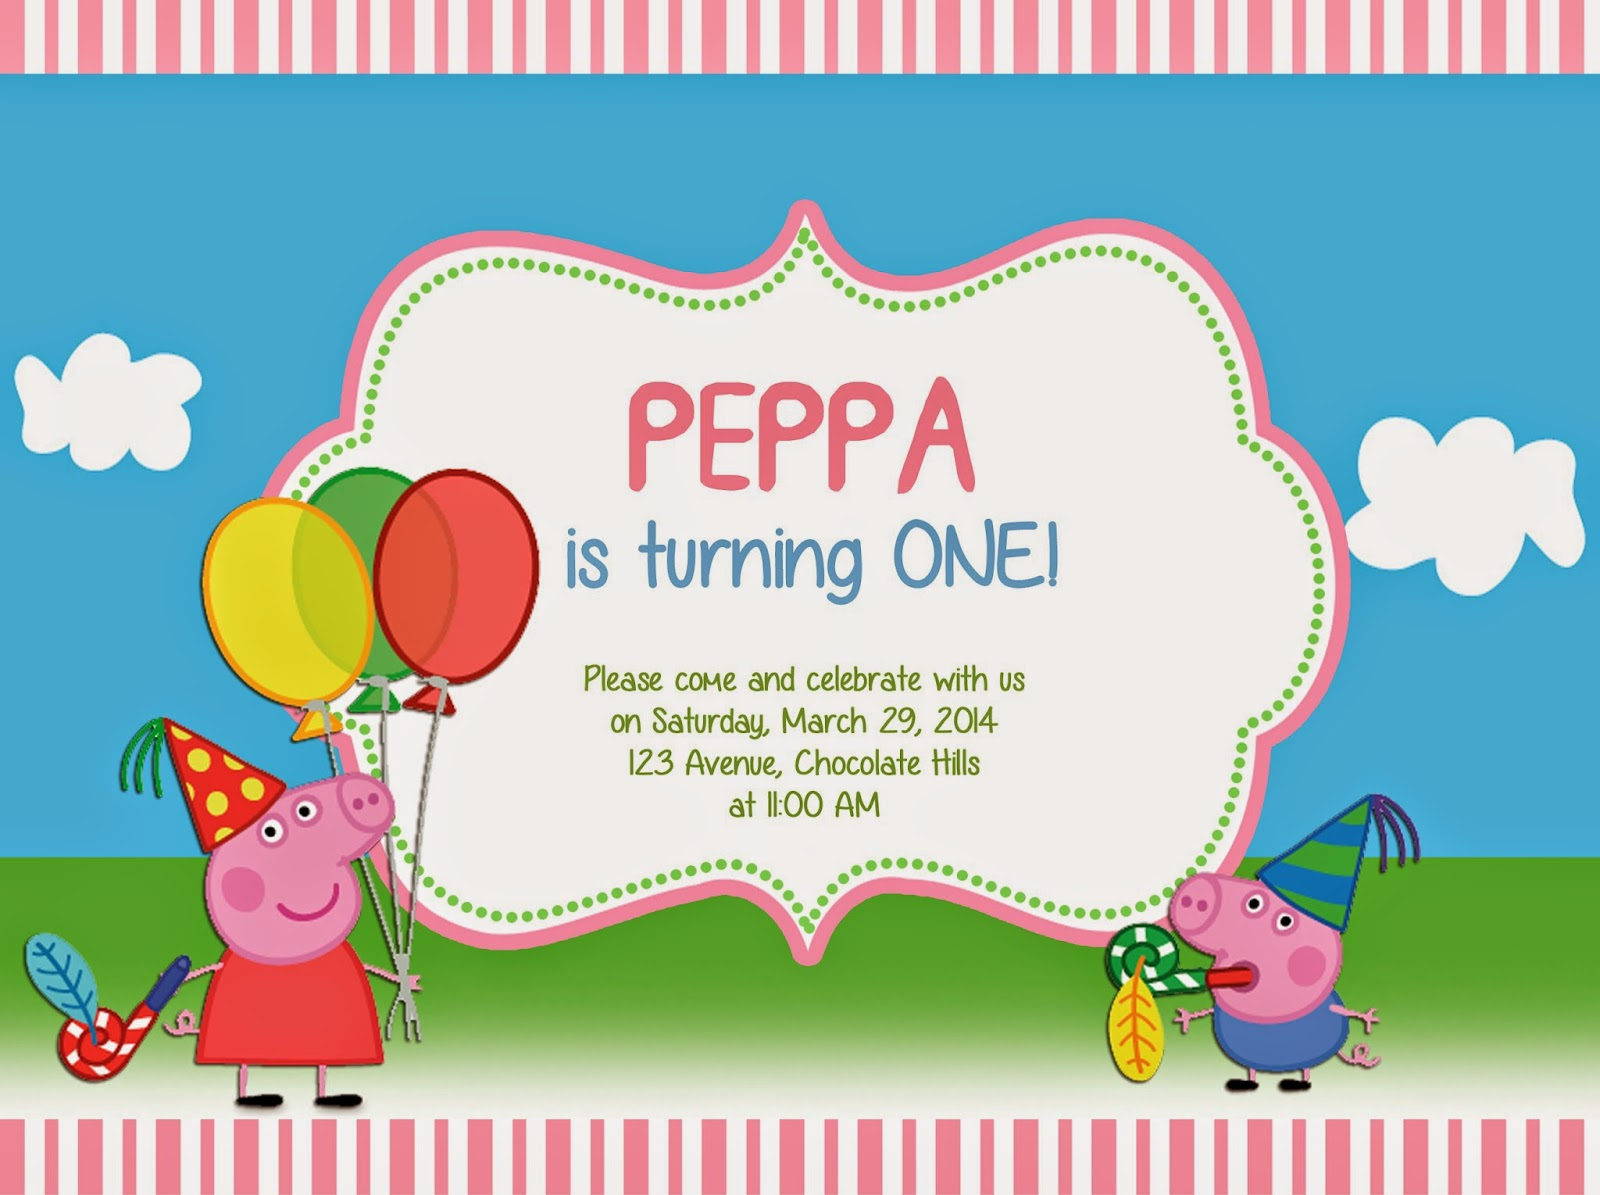 Peppa Pig Invitation  Free Templates For Invitations Birthday